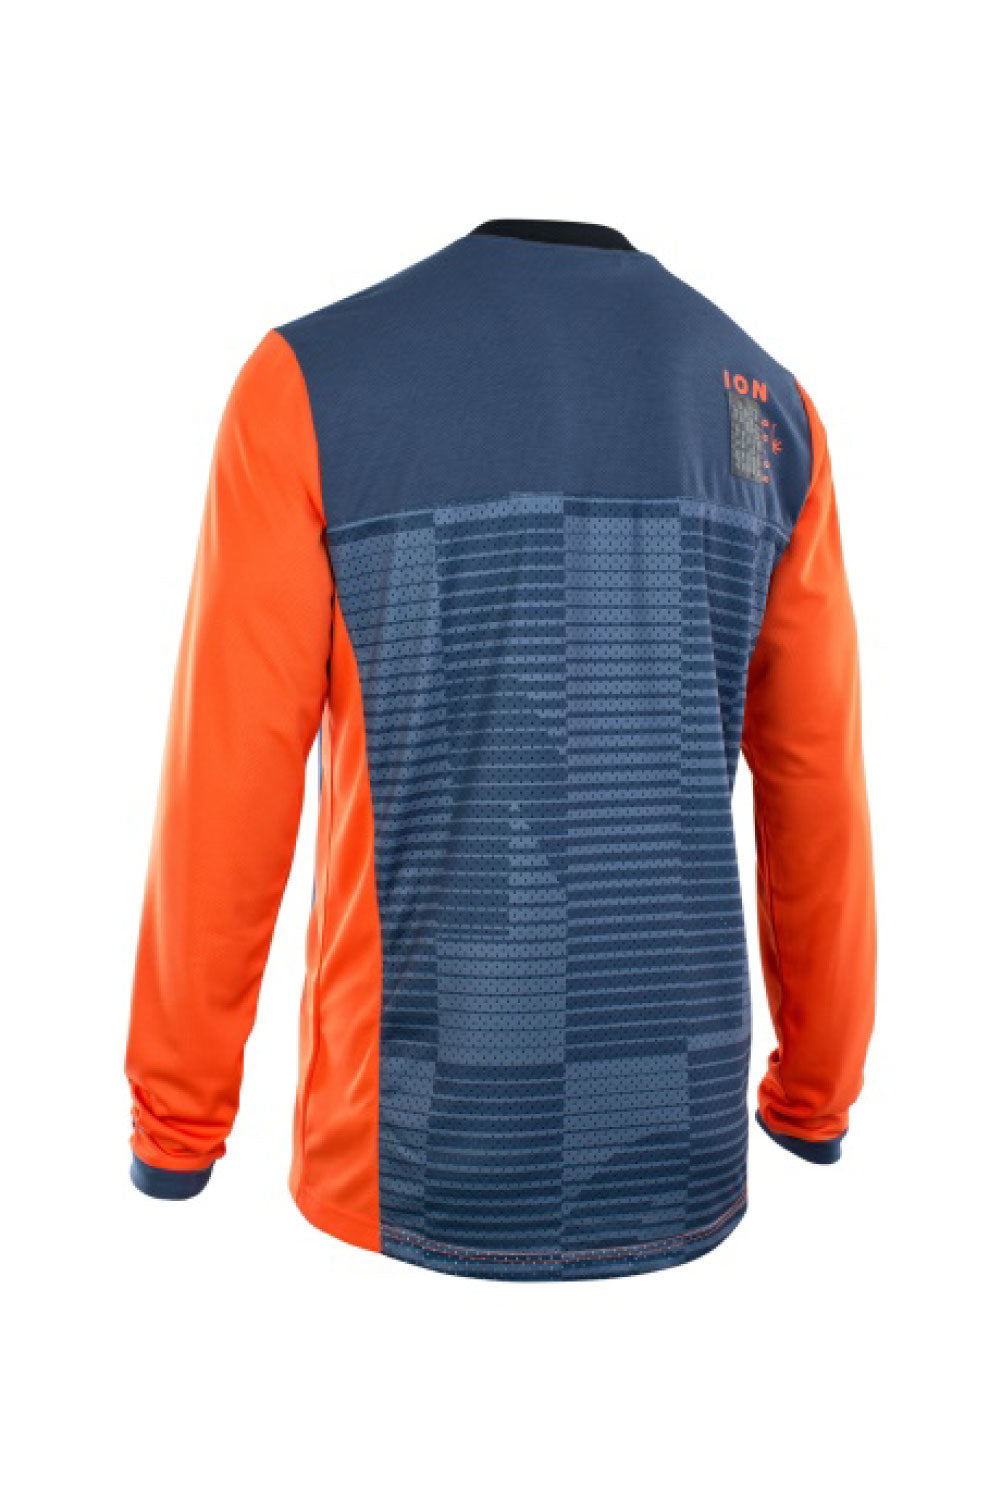 ION 2021 Scrub Mesh Long Sleeve MTB T-Shirt